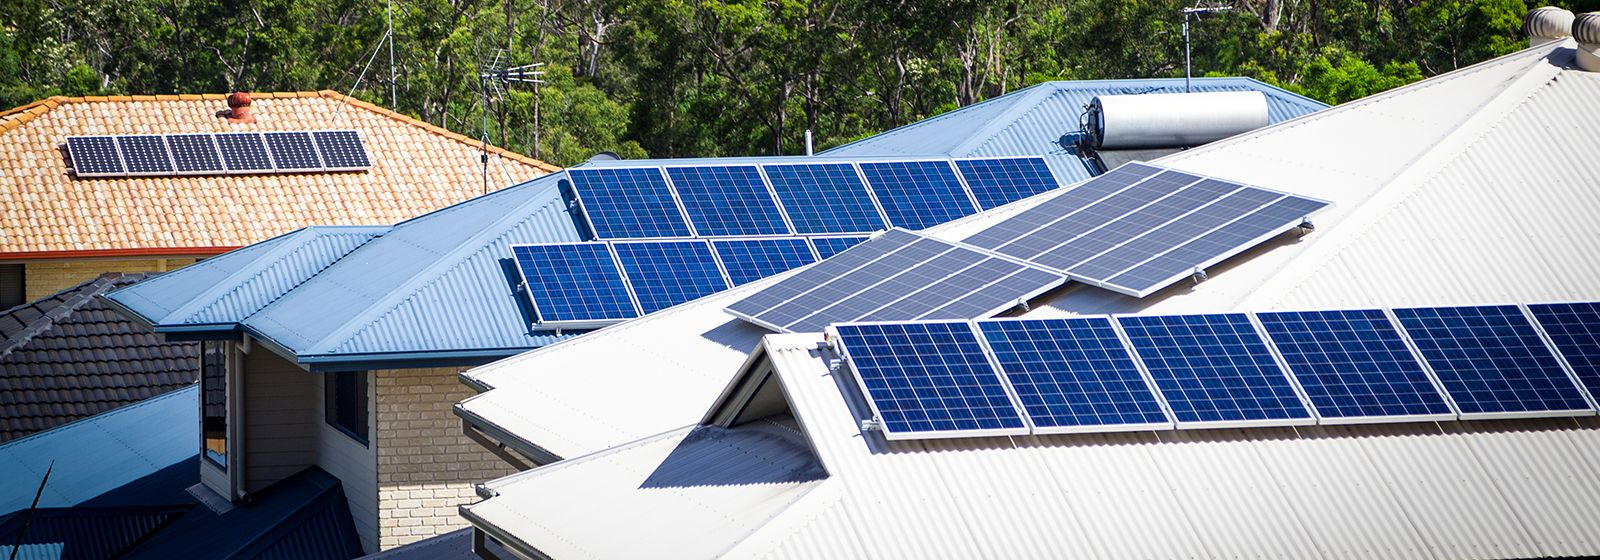 Want solar energy? New NC law makes it easier for you